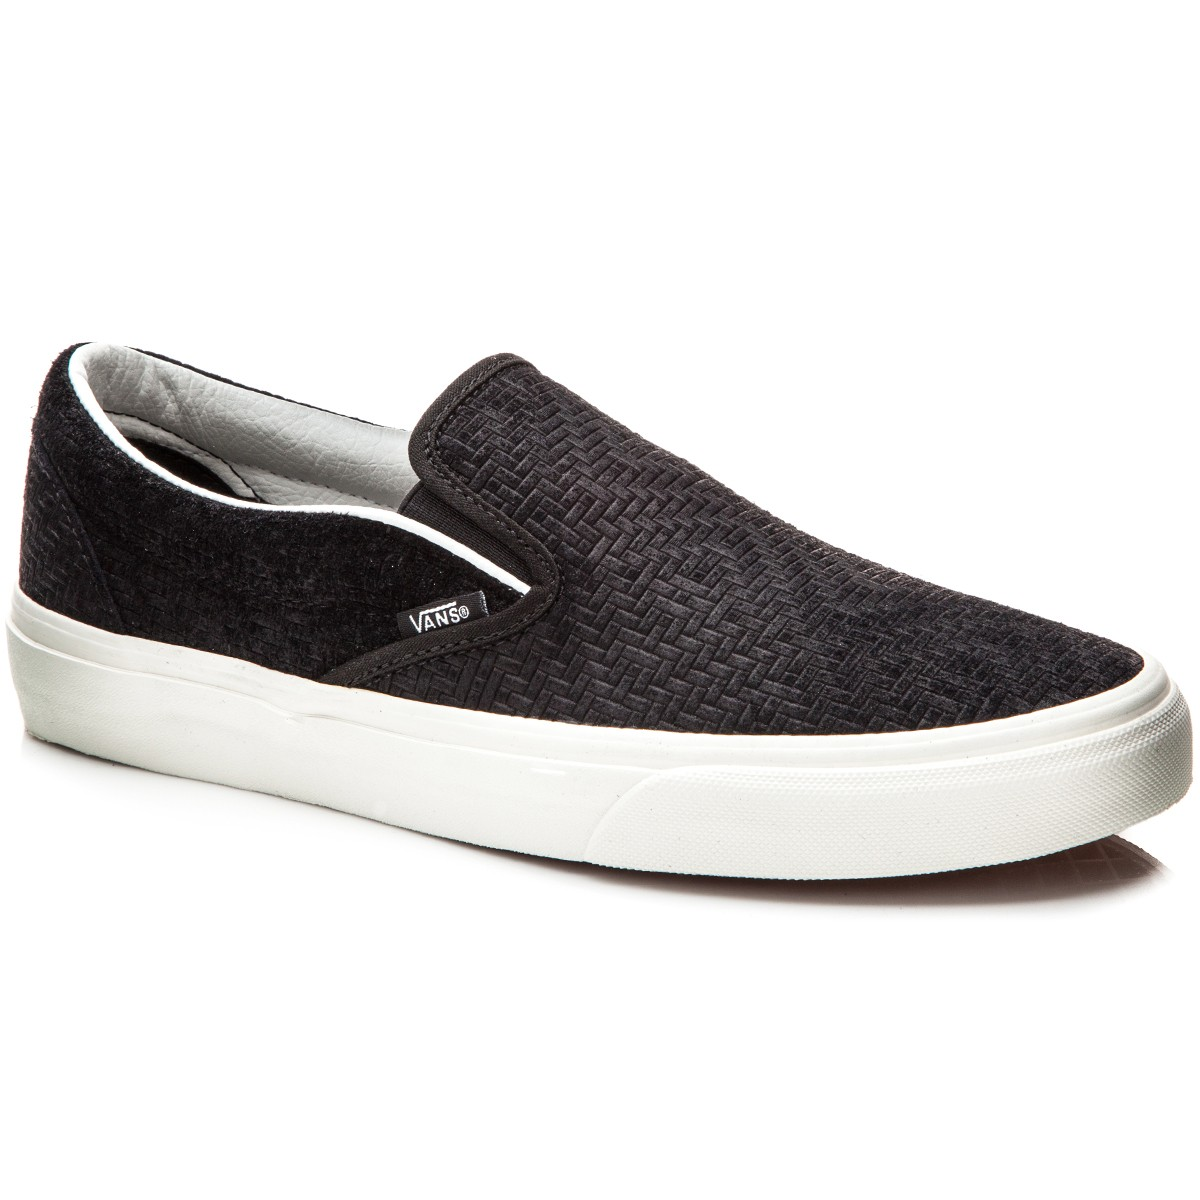 Classic Slip-On Shoe